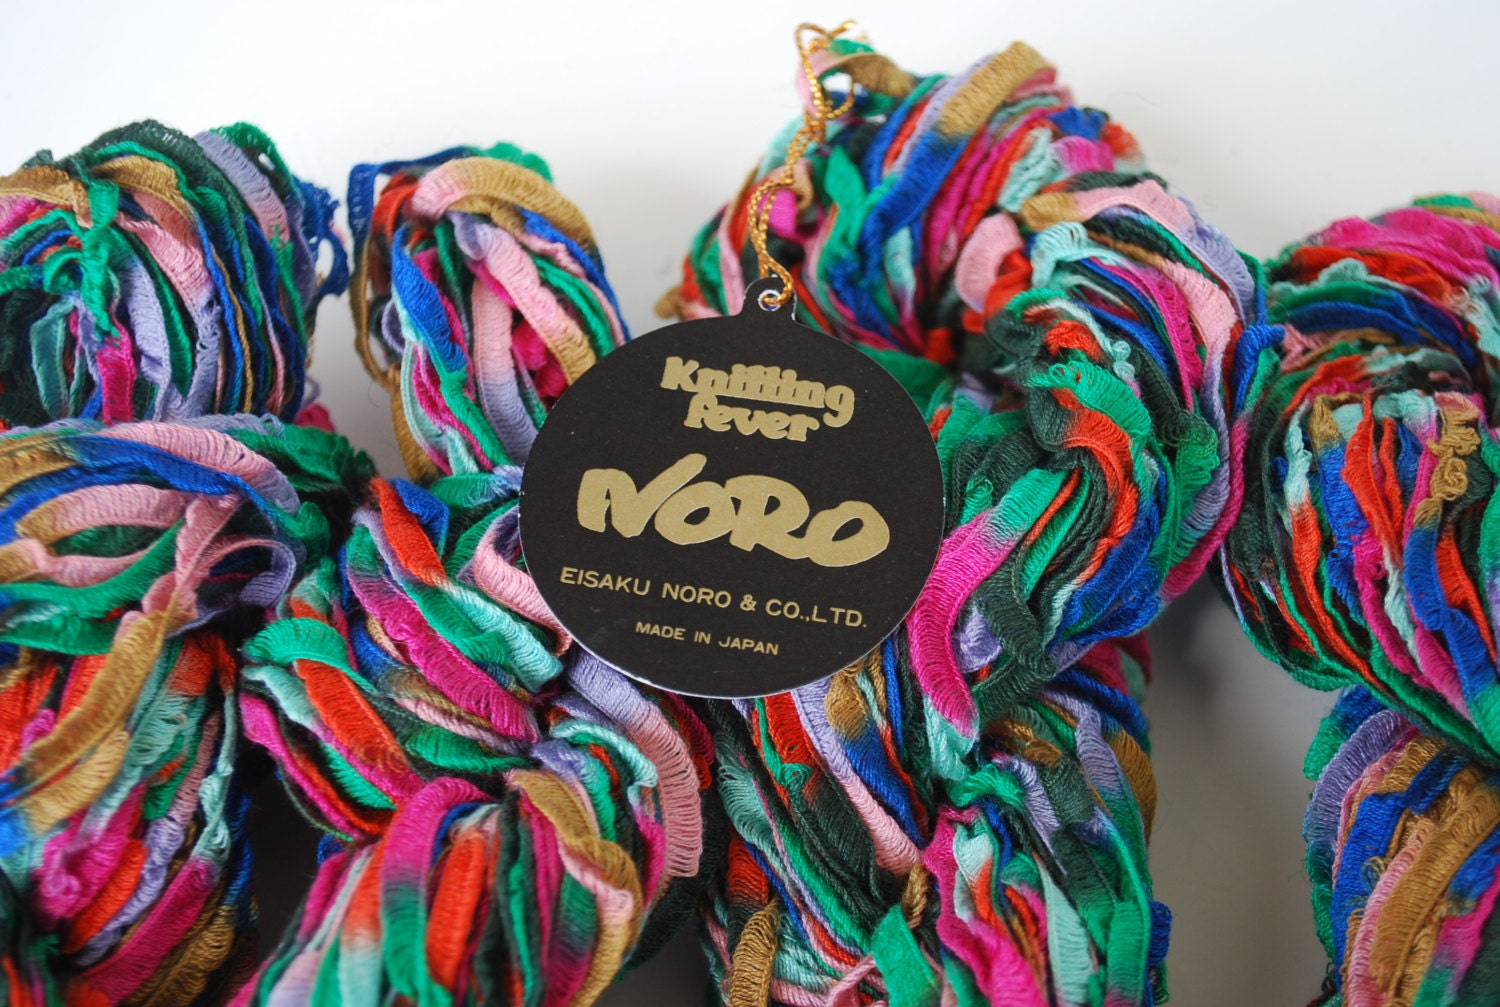 Knitting Fever Wholesale : Skeins knitting fever noro yarns wakaba cotton from